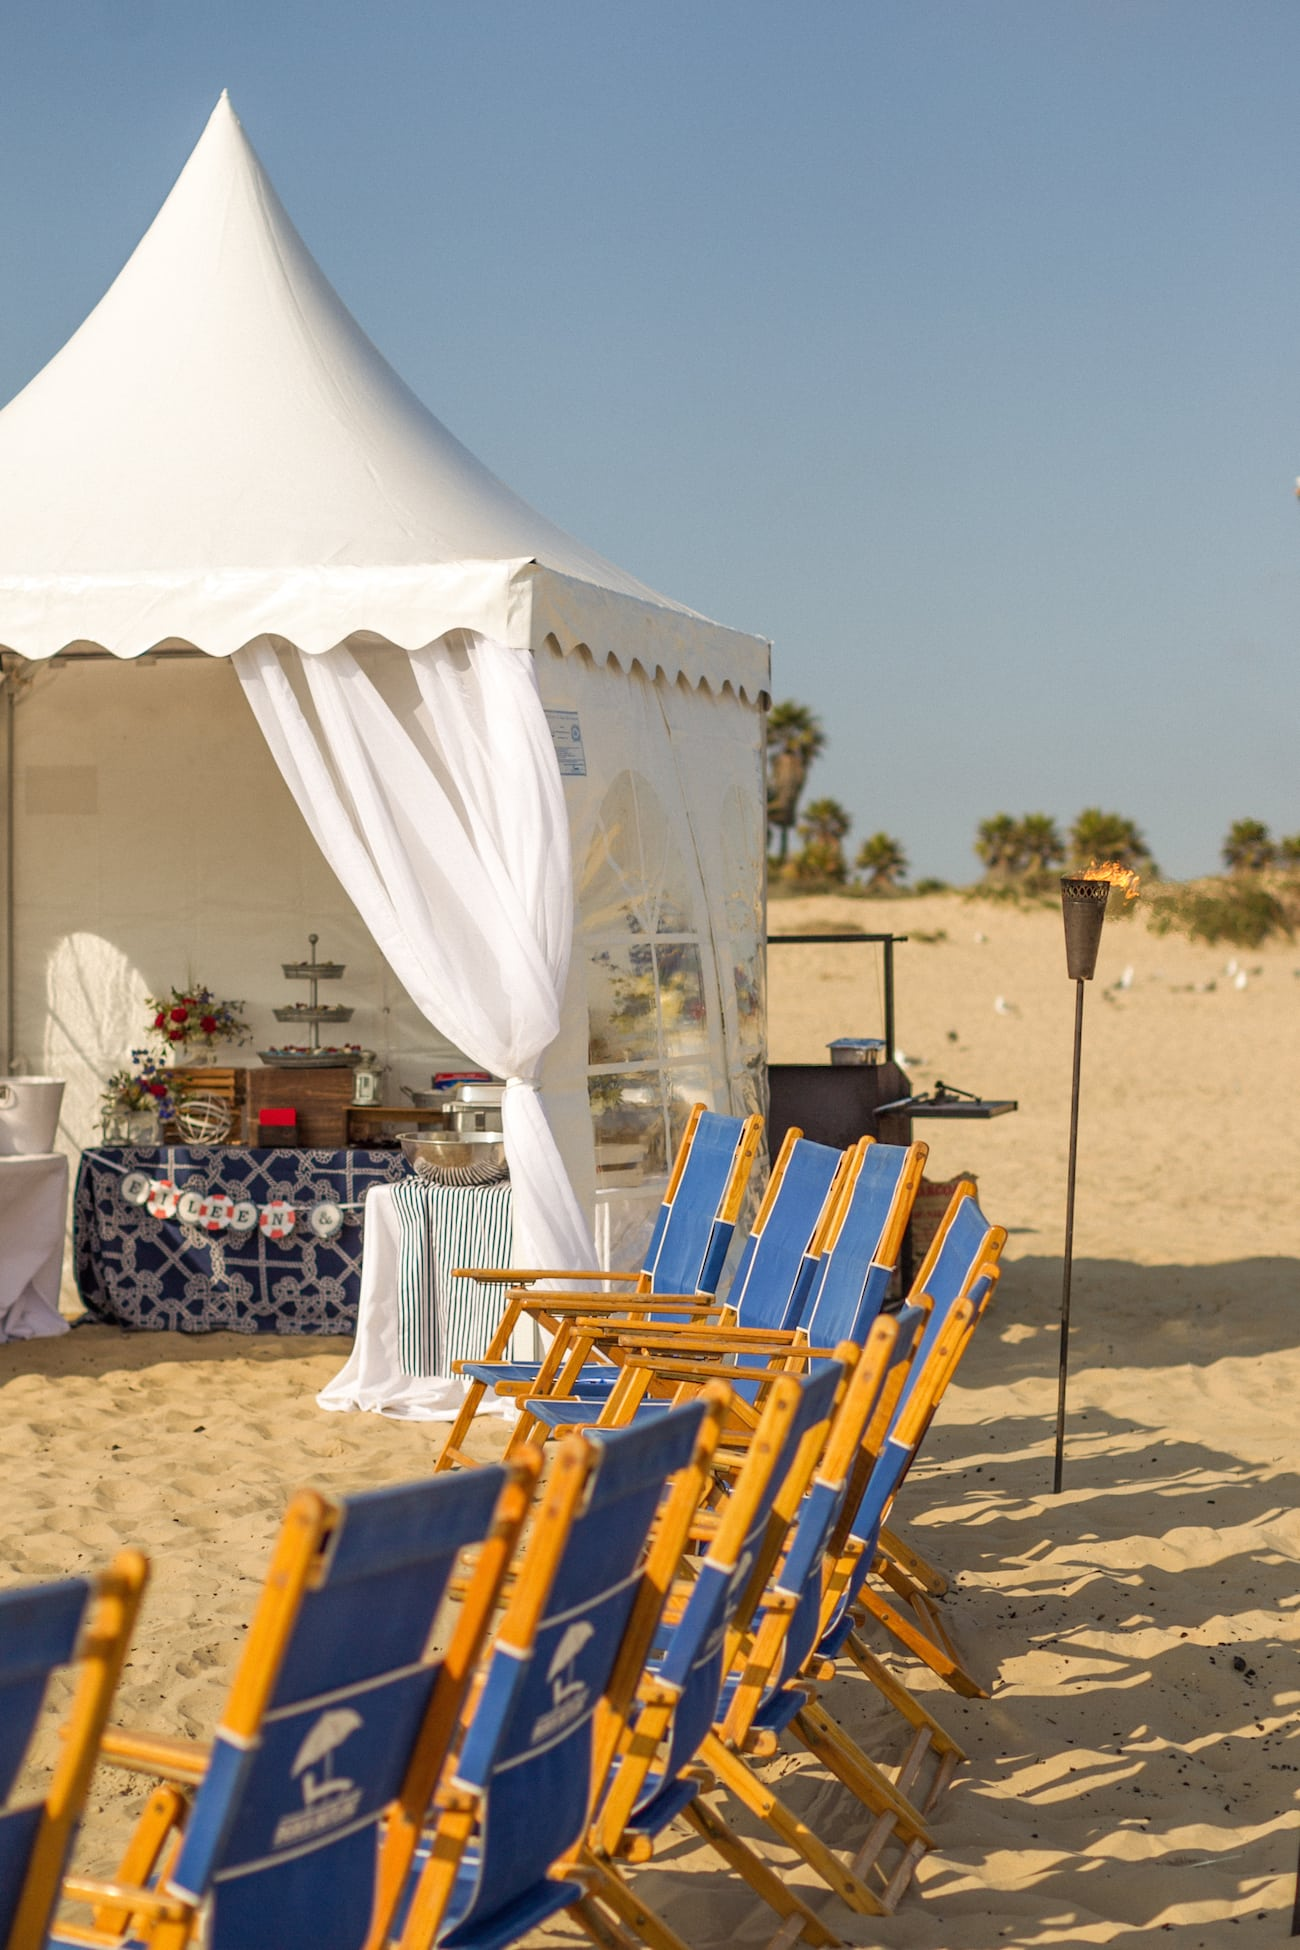 Beach Butlerz offers affordable and fun rentals for your wedding rehearsal party or event at the beach